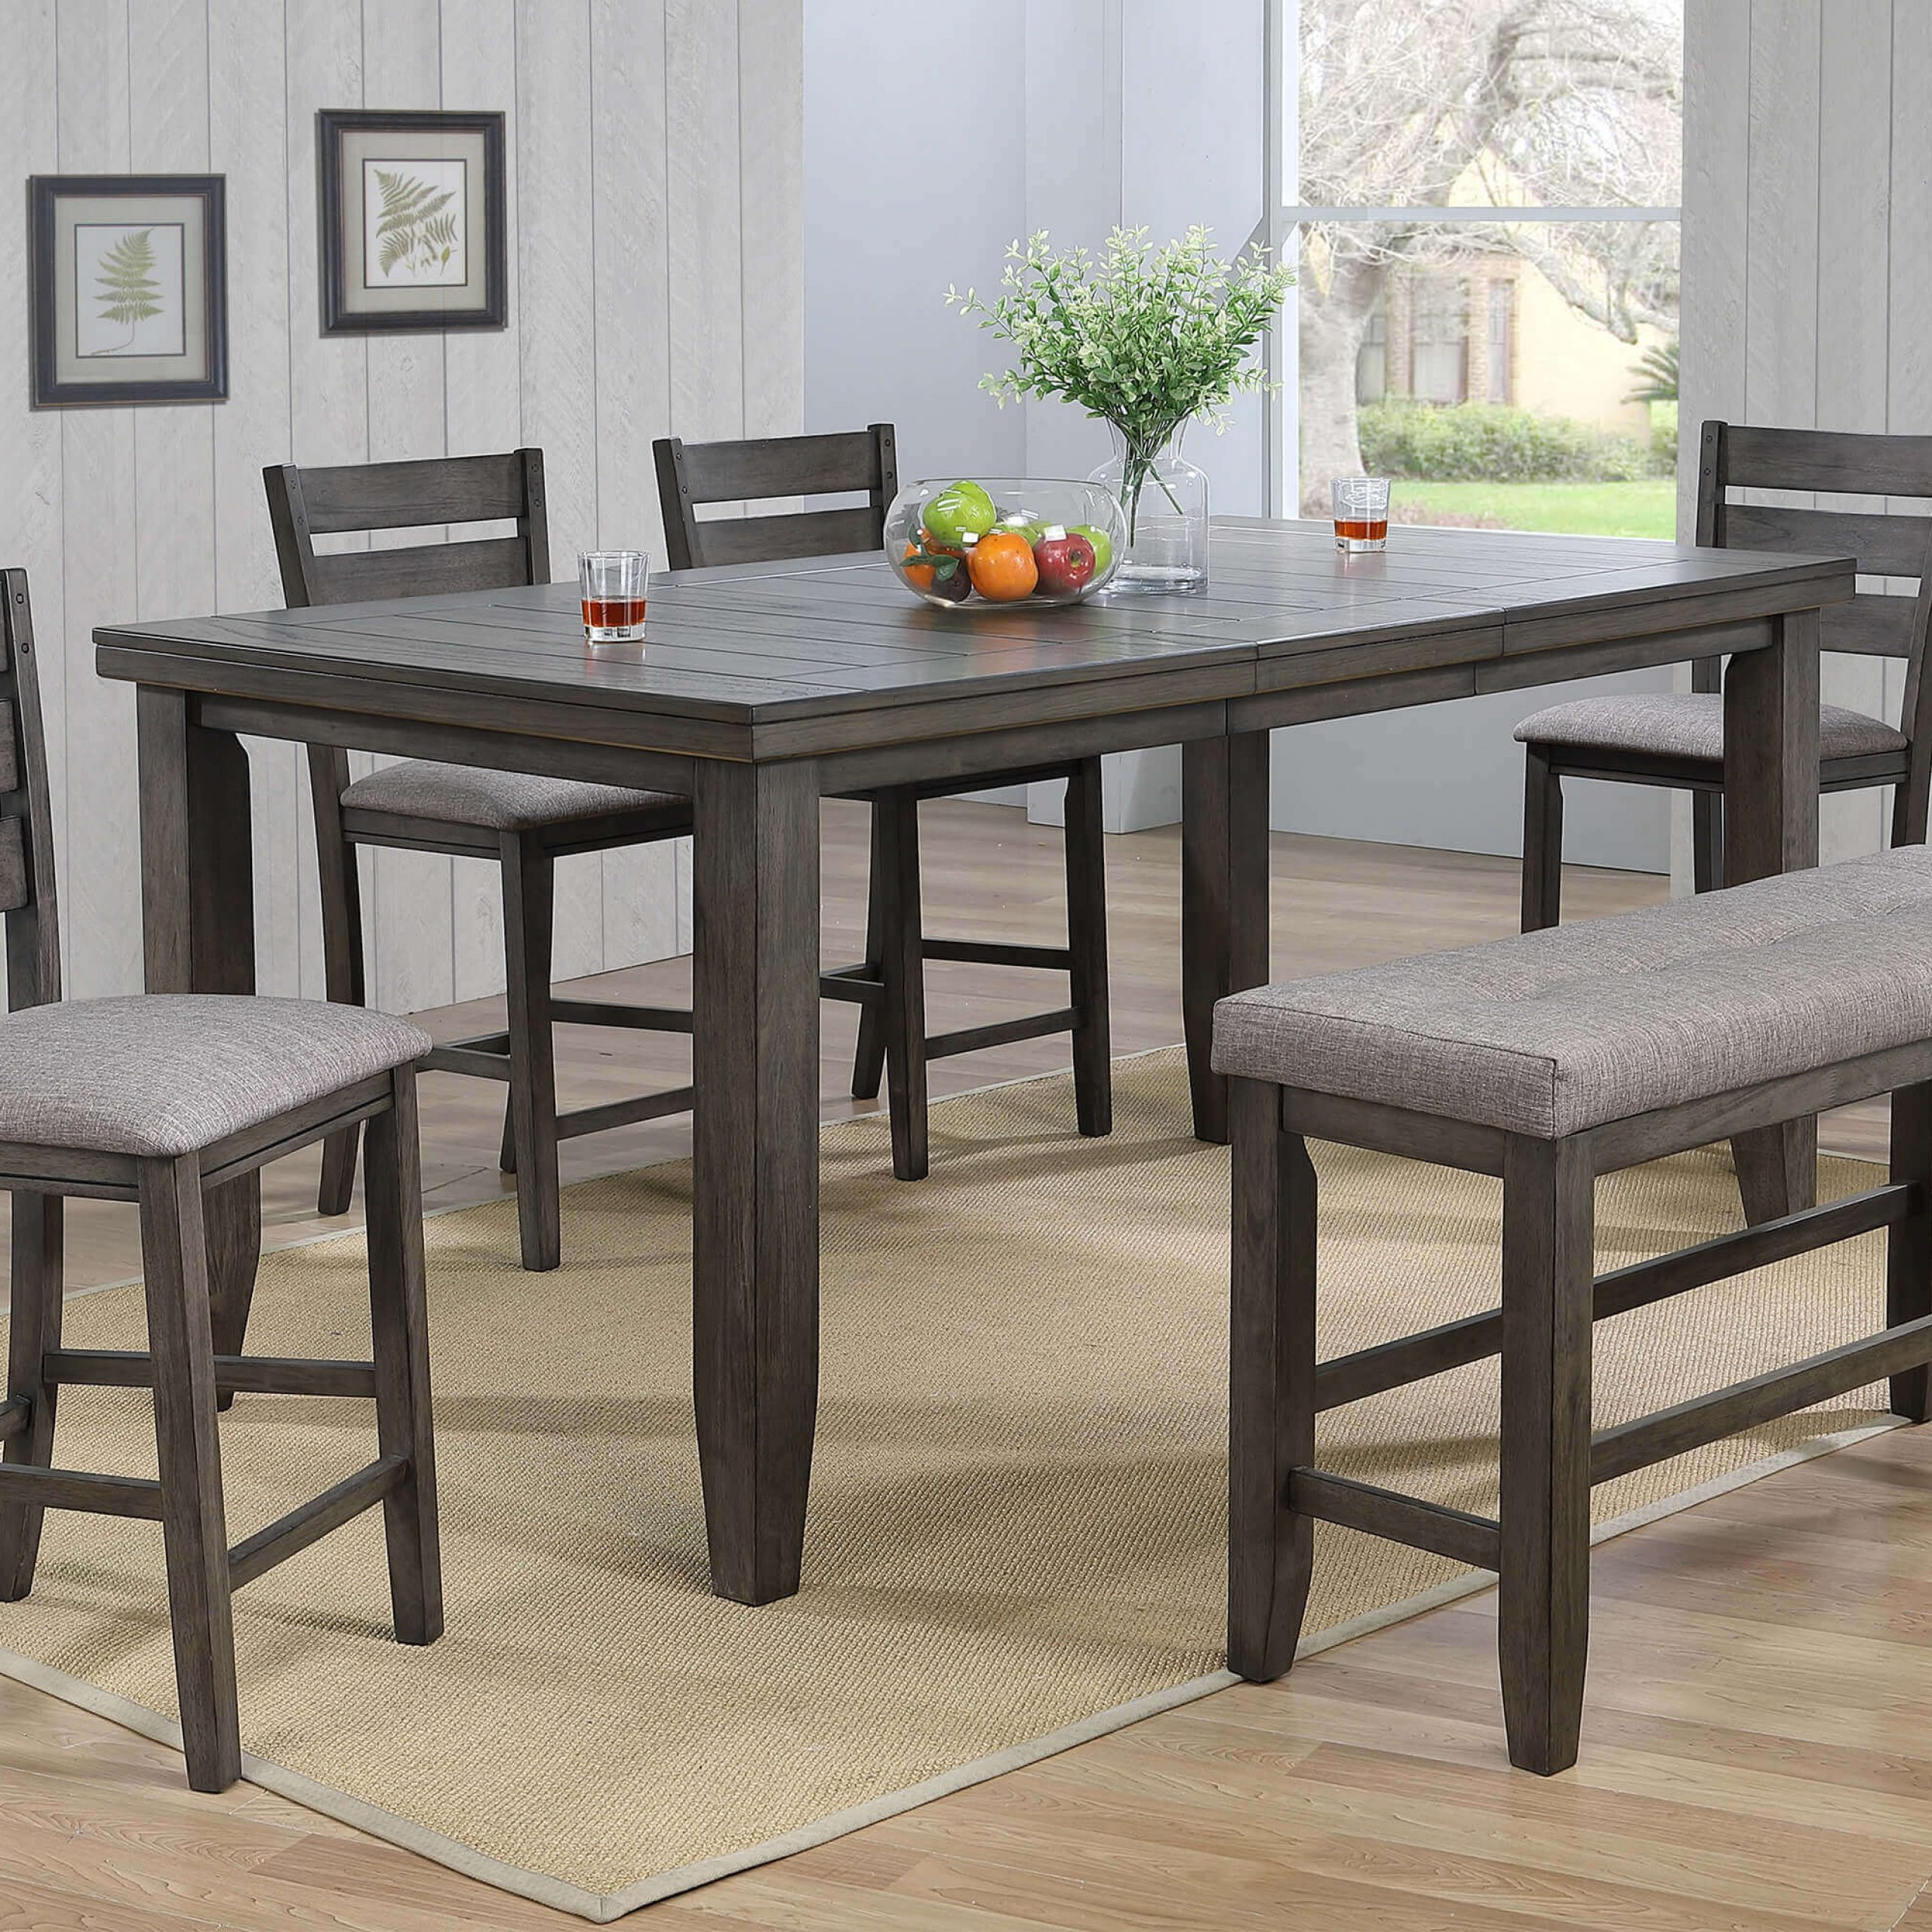 Bardstown Grey Counter Height Set | Dining Room Sets Intended For 2018 Counter Height Dining Tables (View 15 of 15)